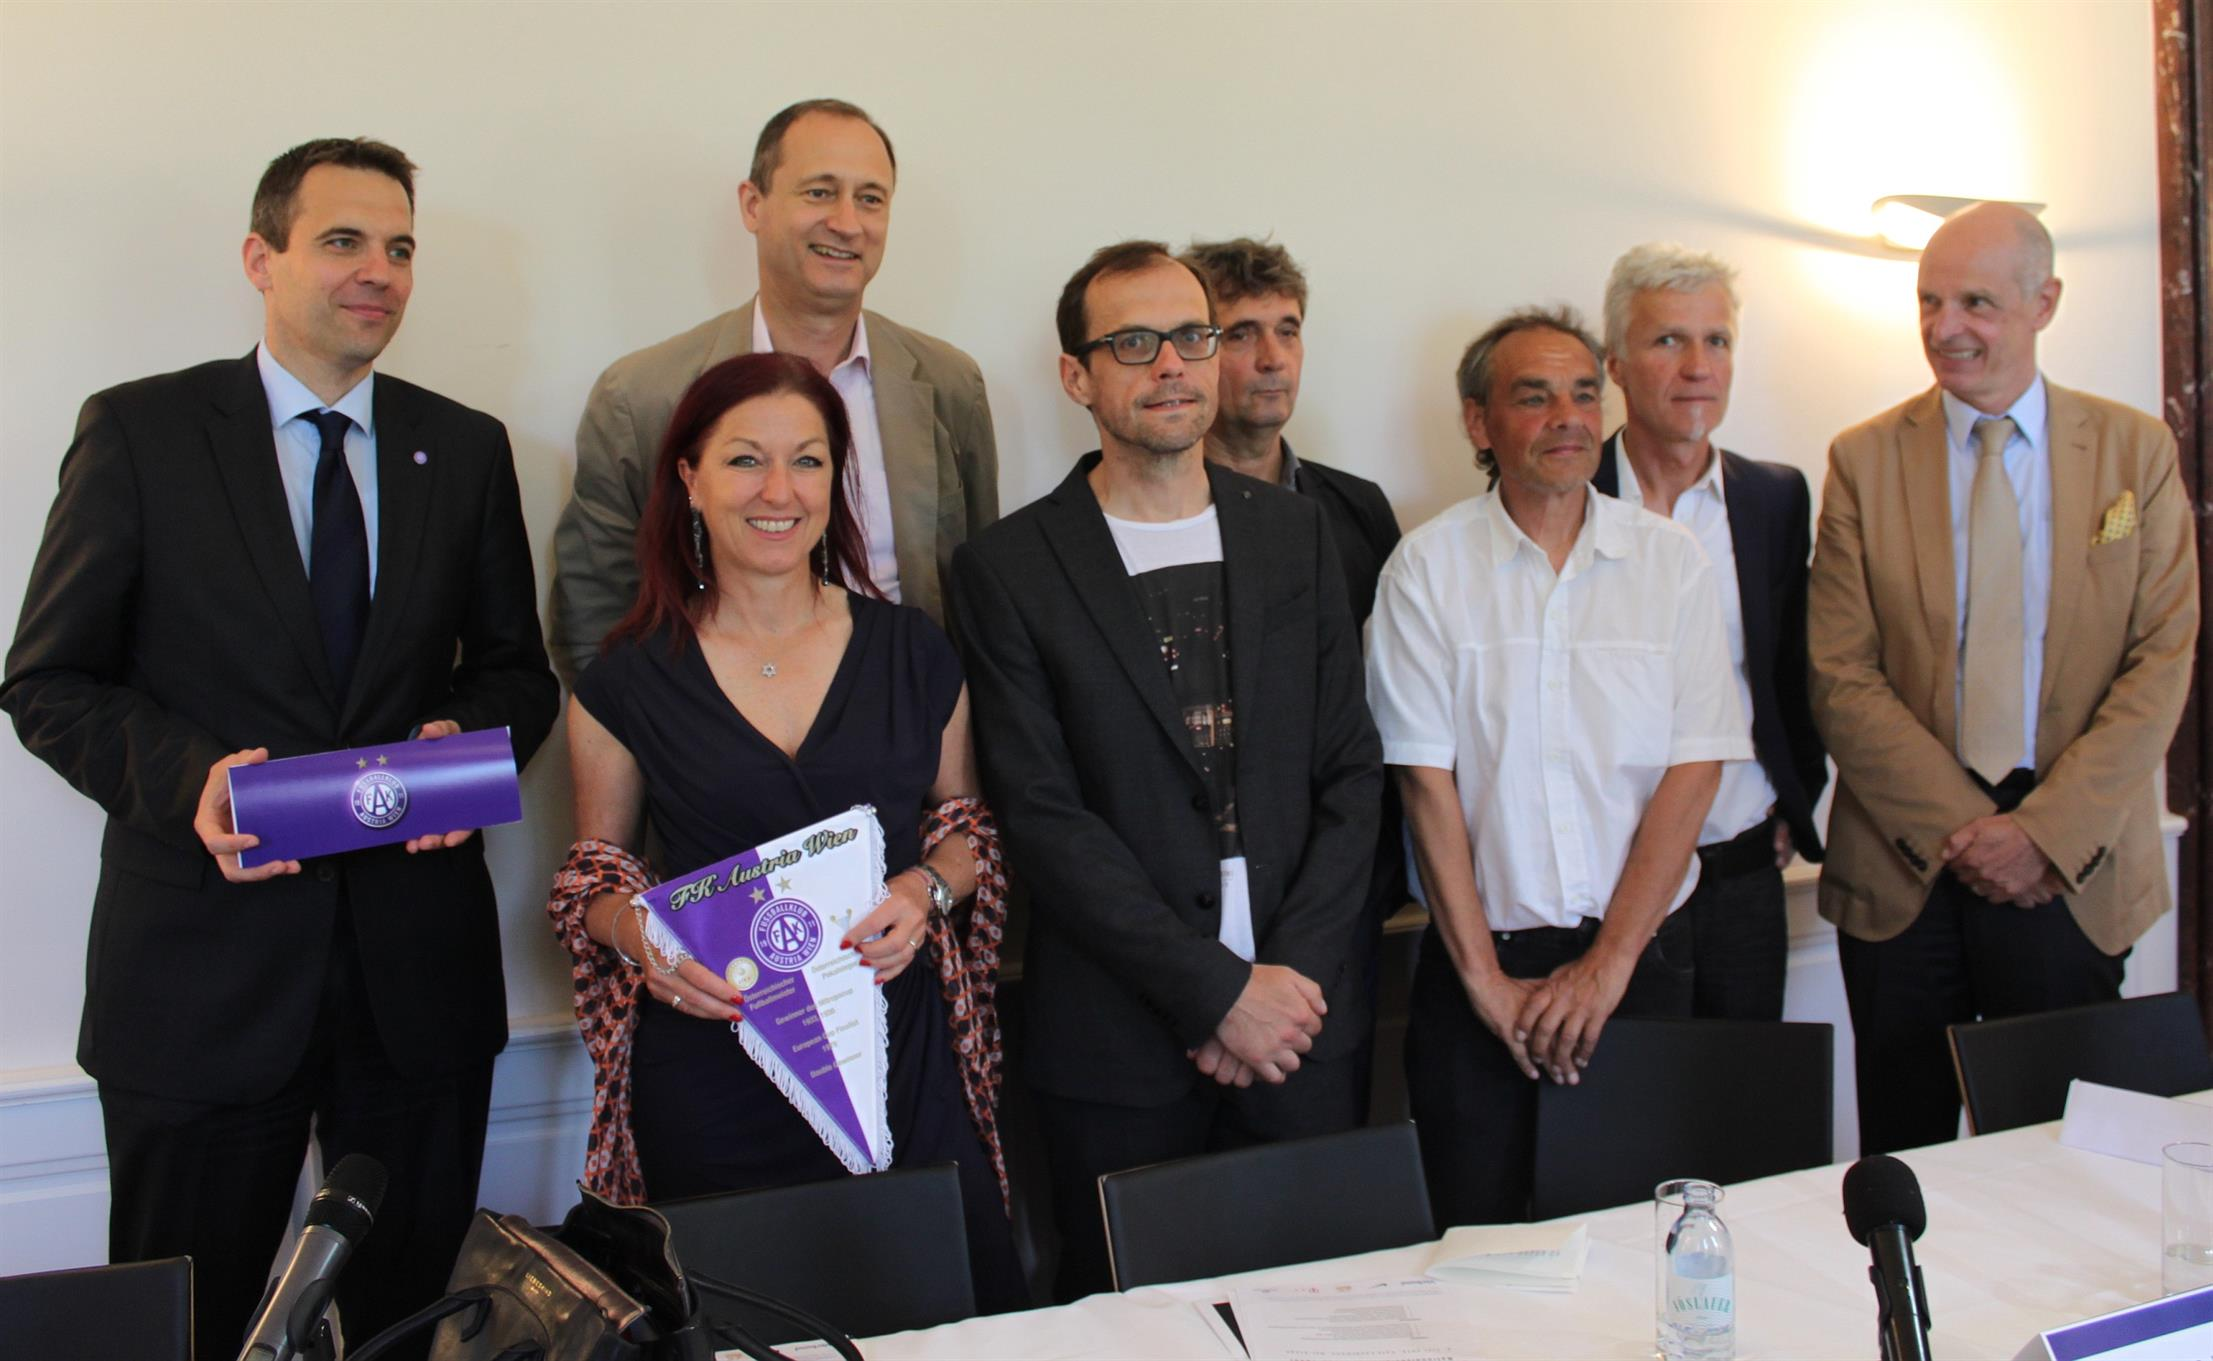 From left to right: Markus Kraetschmer, Hannah Lessing, Andreas Mailath-Pokorny, Kurt Schulz, Johann Skocek. Press conference for the scientific project Austria Wien Football Club between 1938 and 1945, 6 June 2016, Café Landtmann.